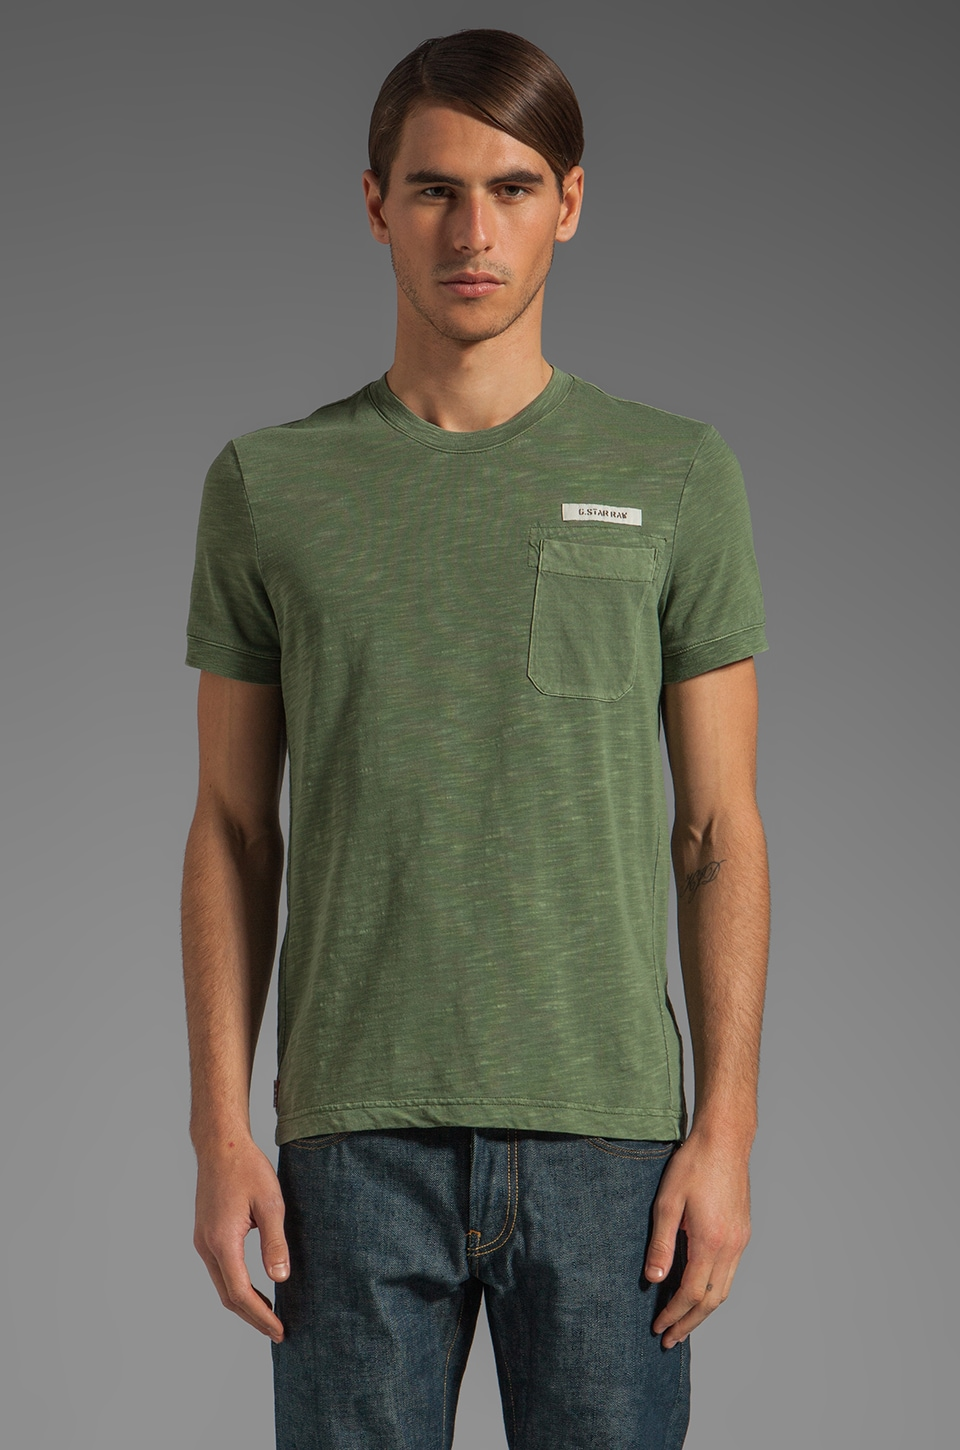 G-Star Race Tee in Sage